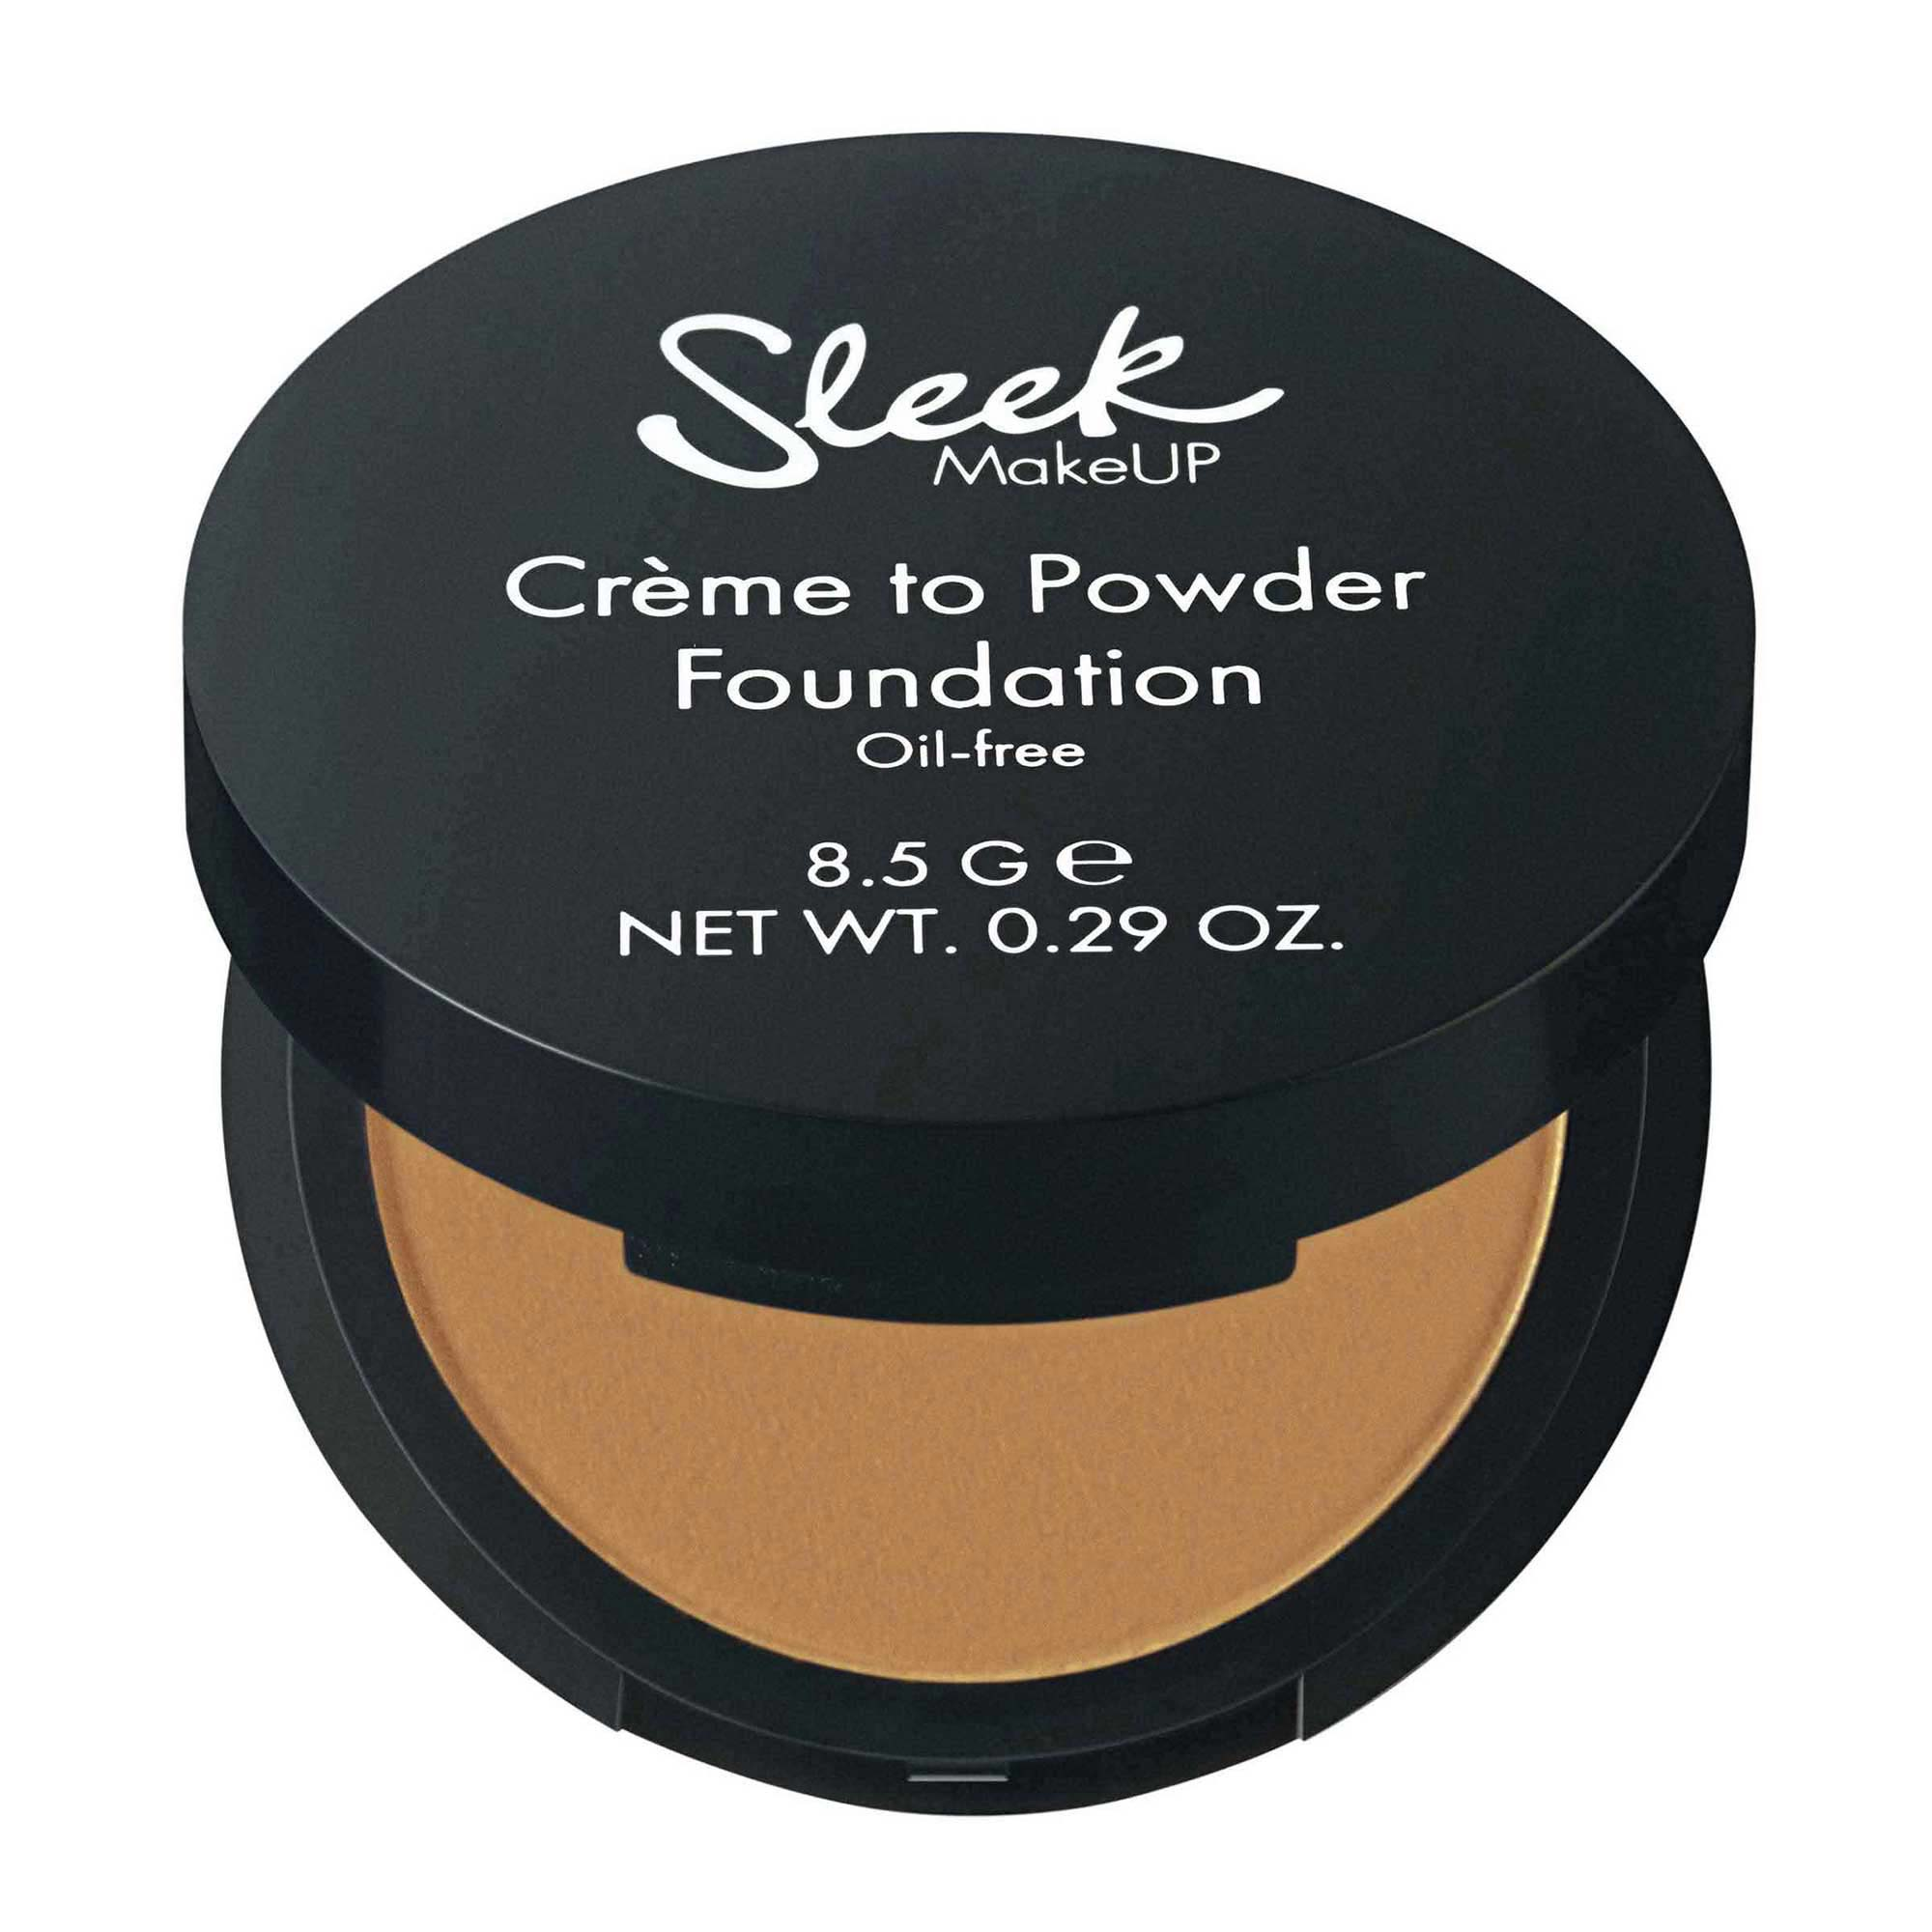 Crème to Powder Foundation C2P9